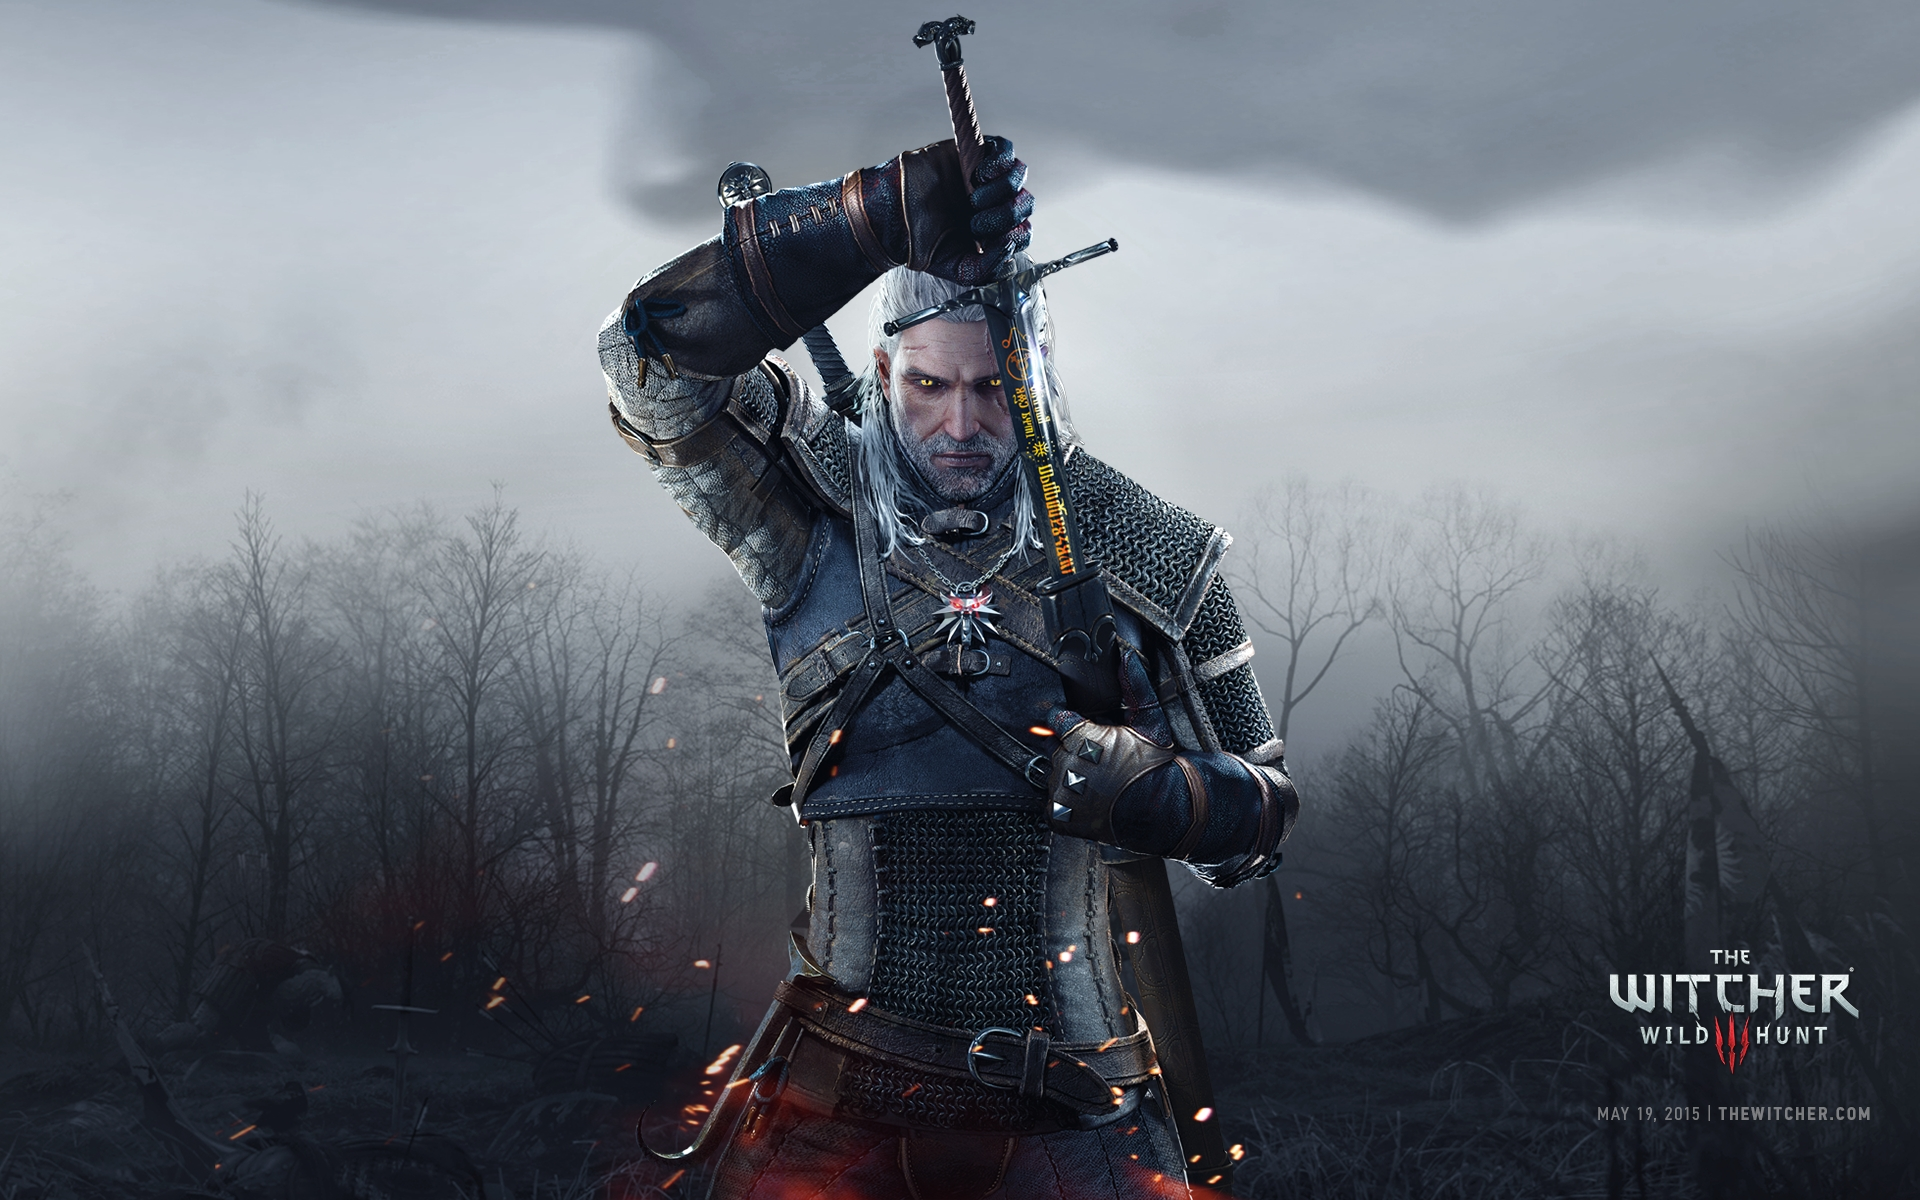 The Witcher 3 - Wallpaper Full HD - Geralt e Espada - 1920x1200